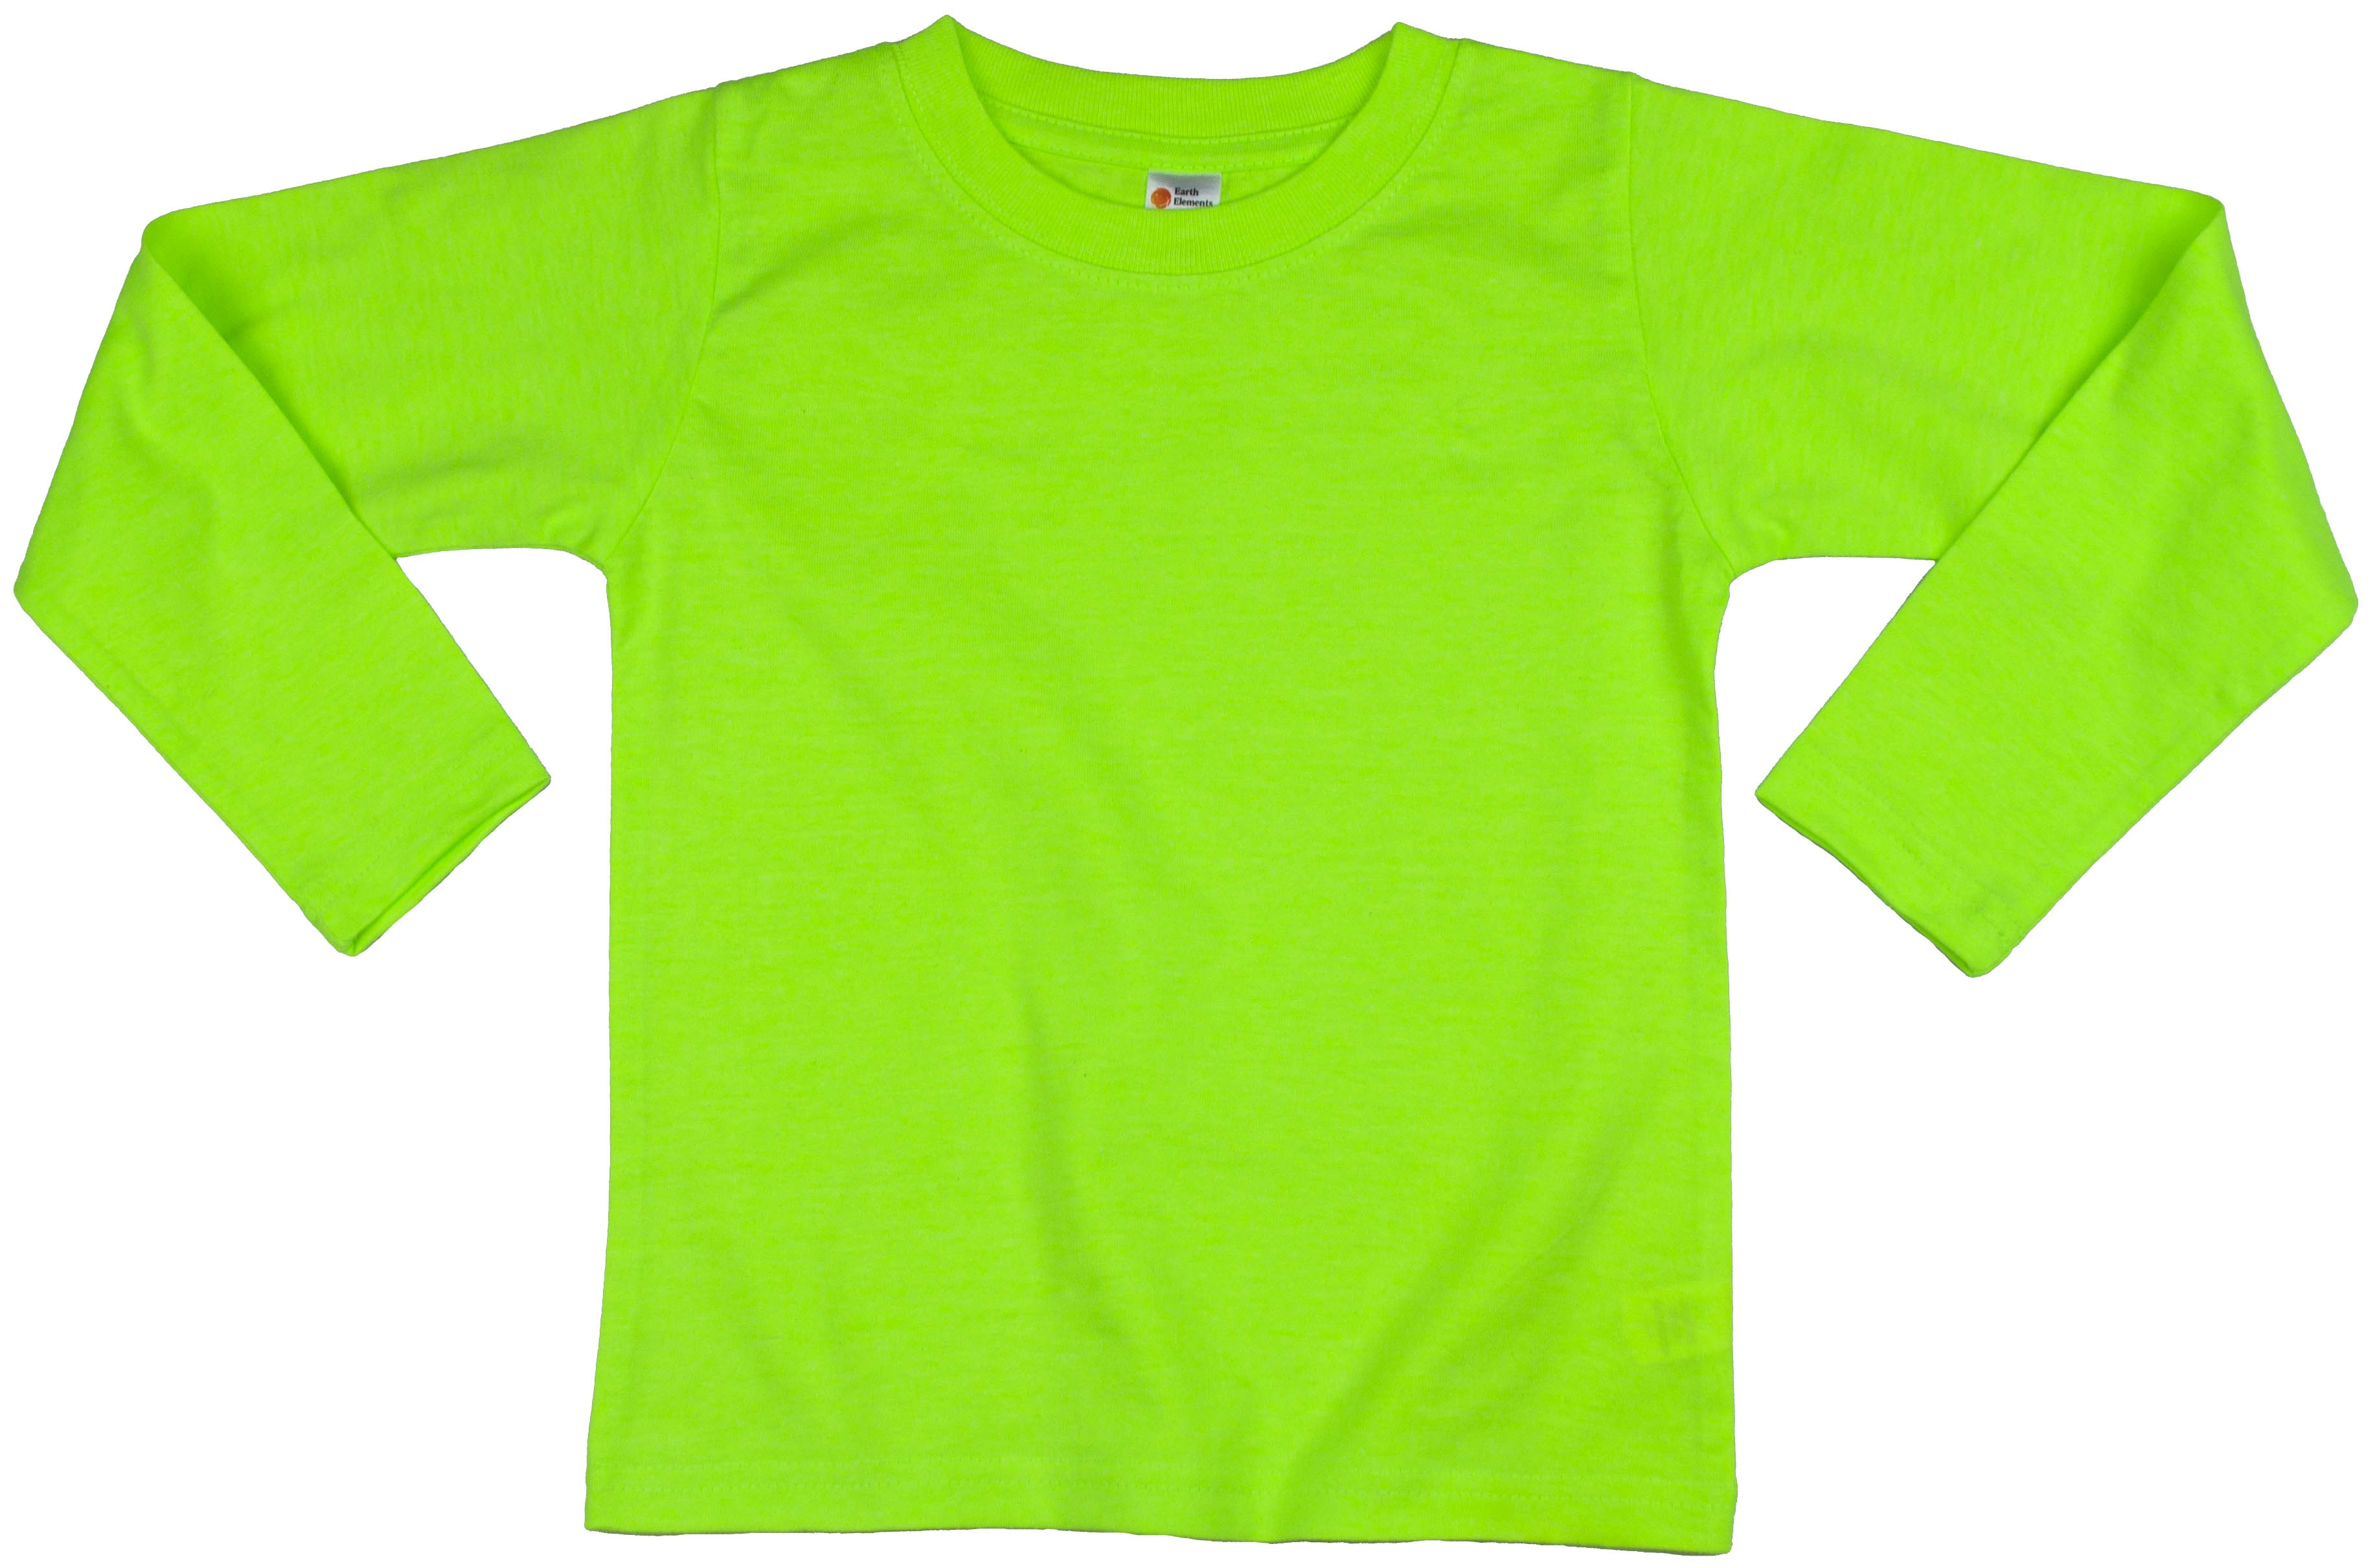 Fashion Kids Toddlers Boys Girls Small Cat Build 100/% Cotton Tops T-Shirt 0-3T